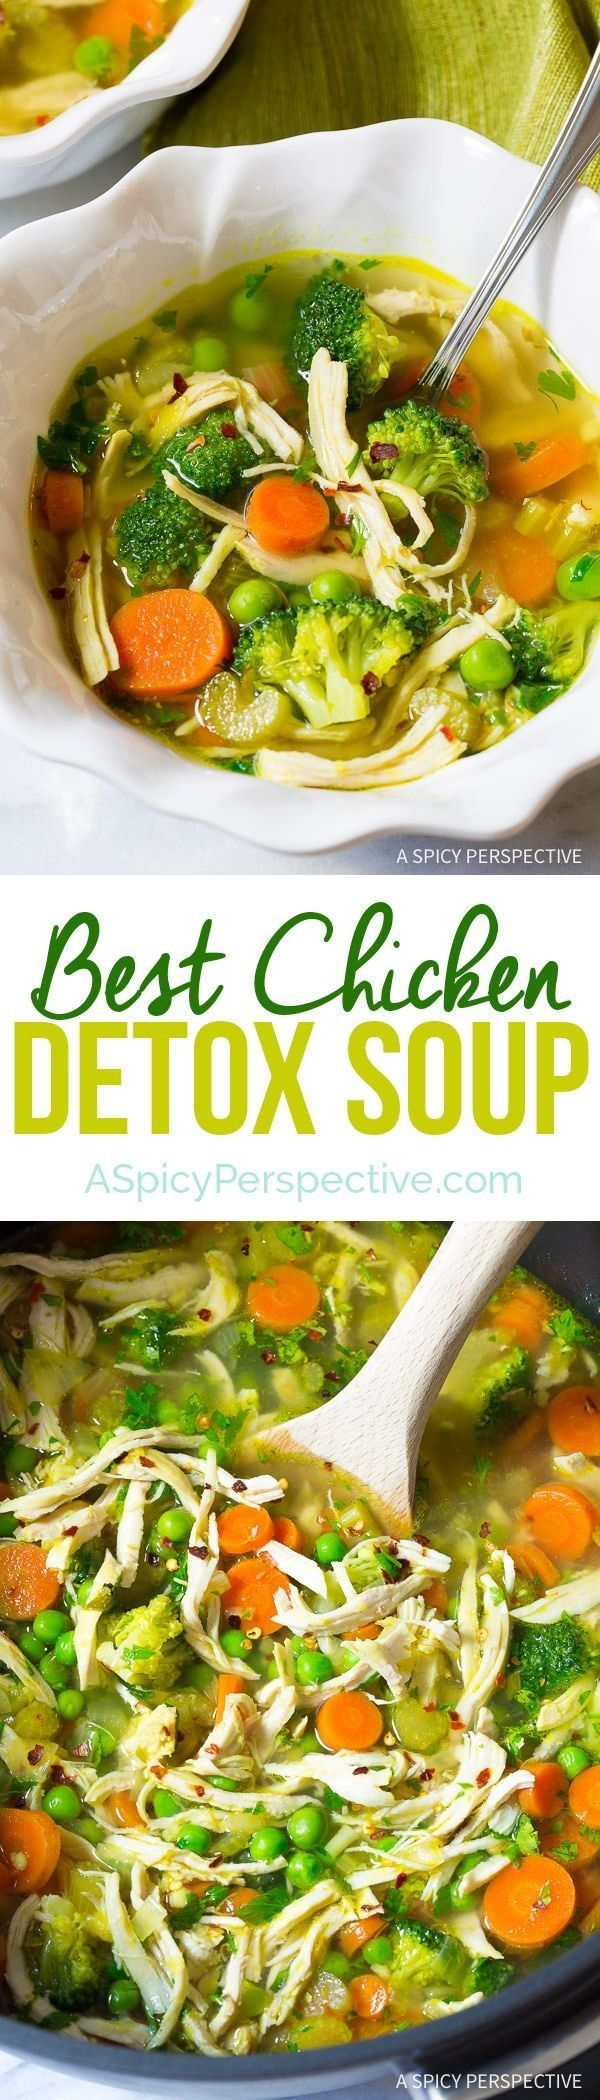 Get the recipe ♥ Best Chicken Detox Soup @recipes_to_go